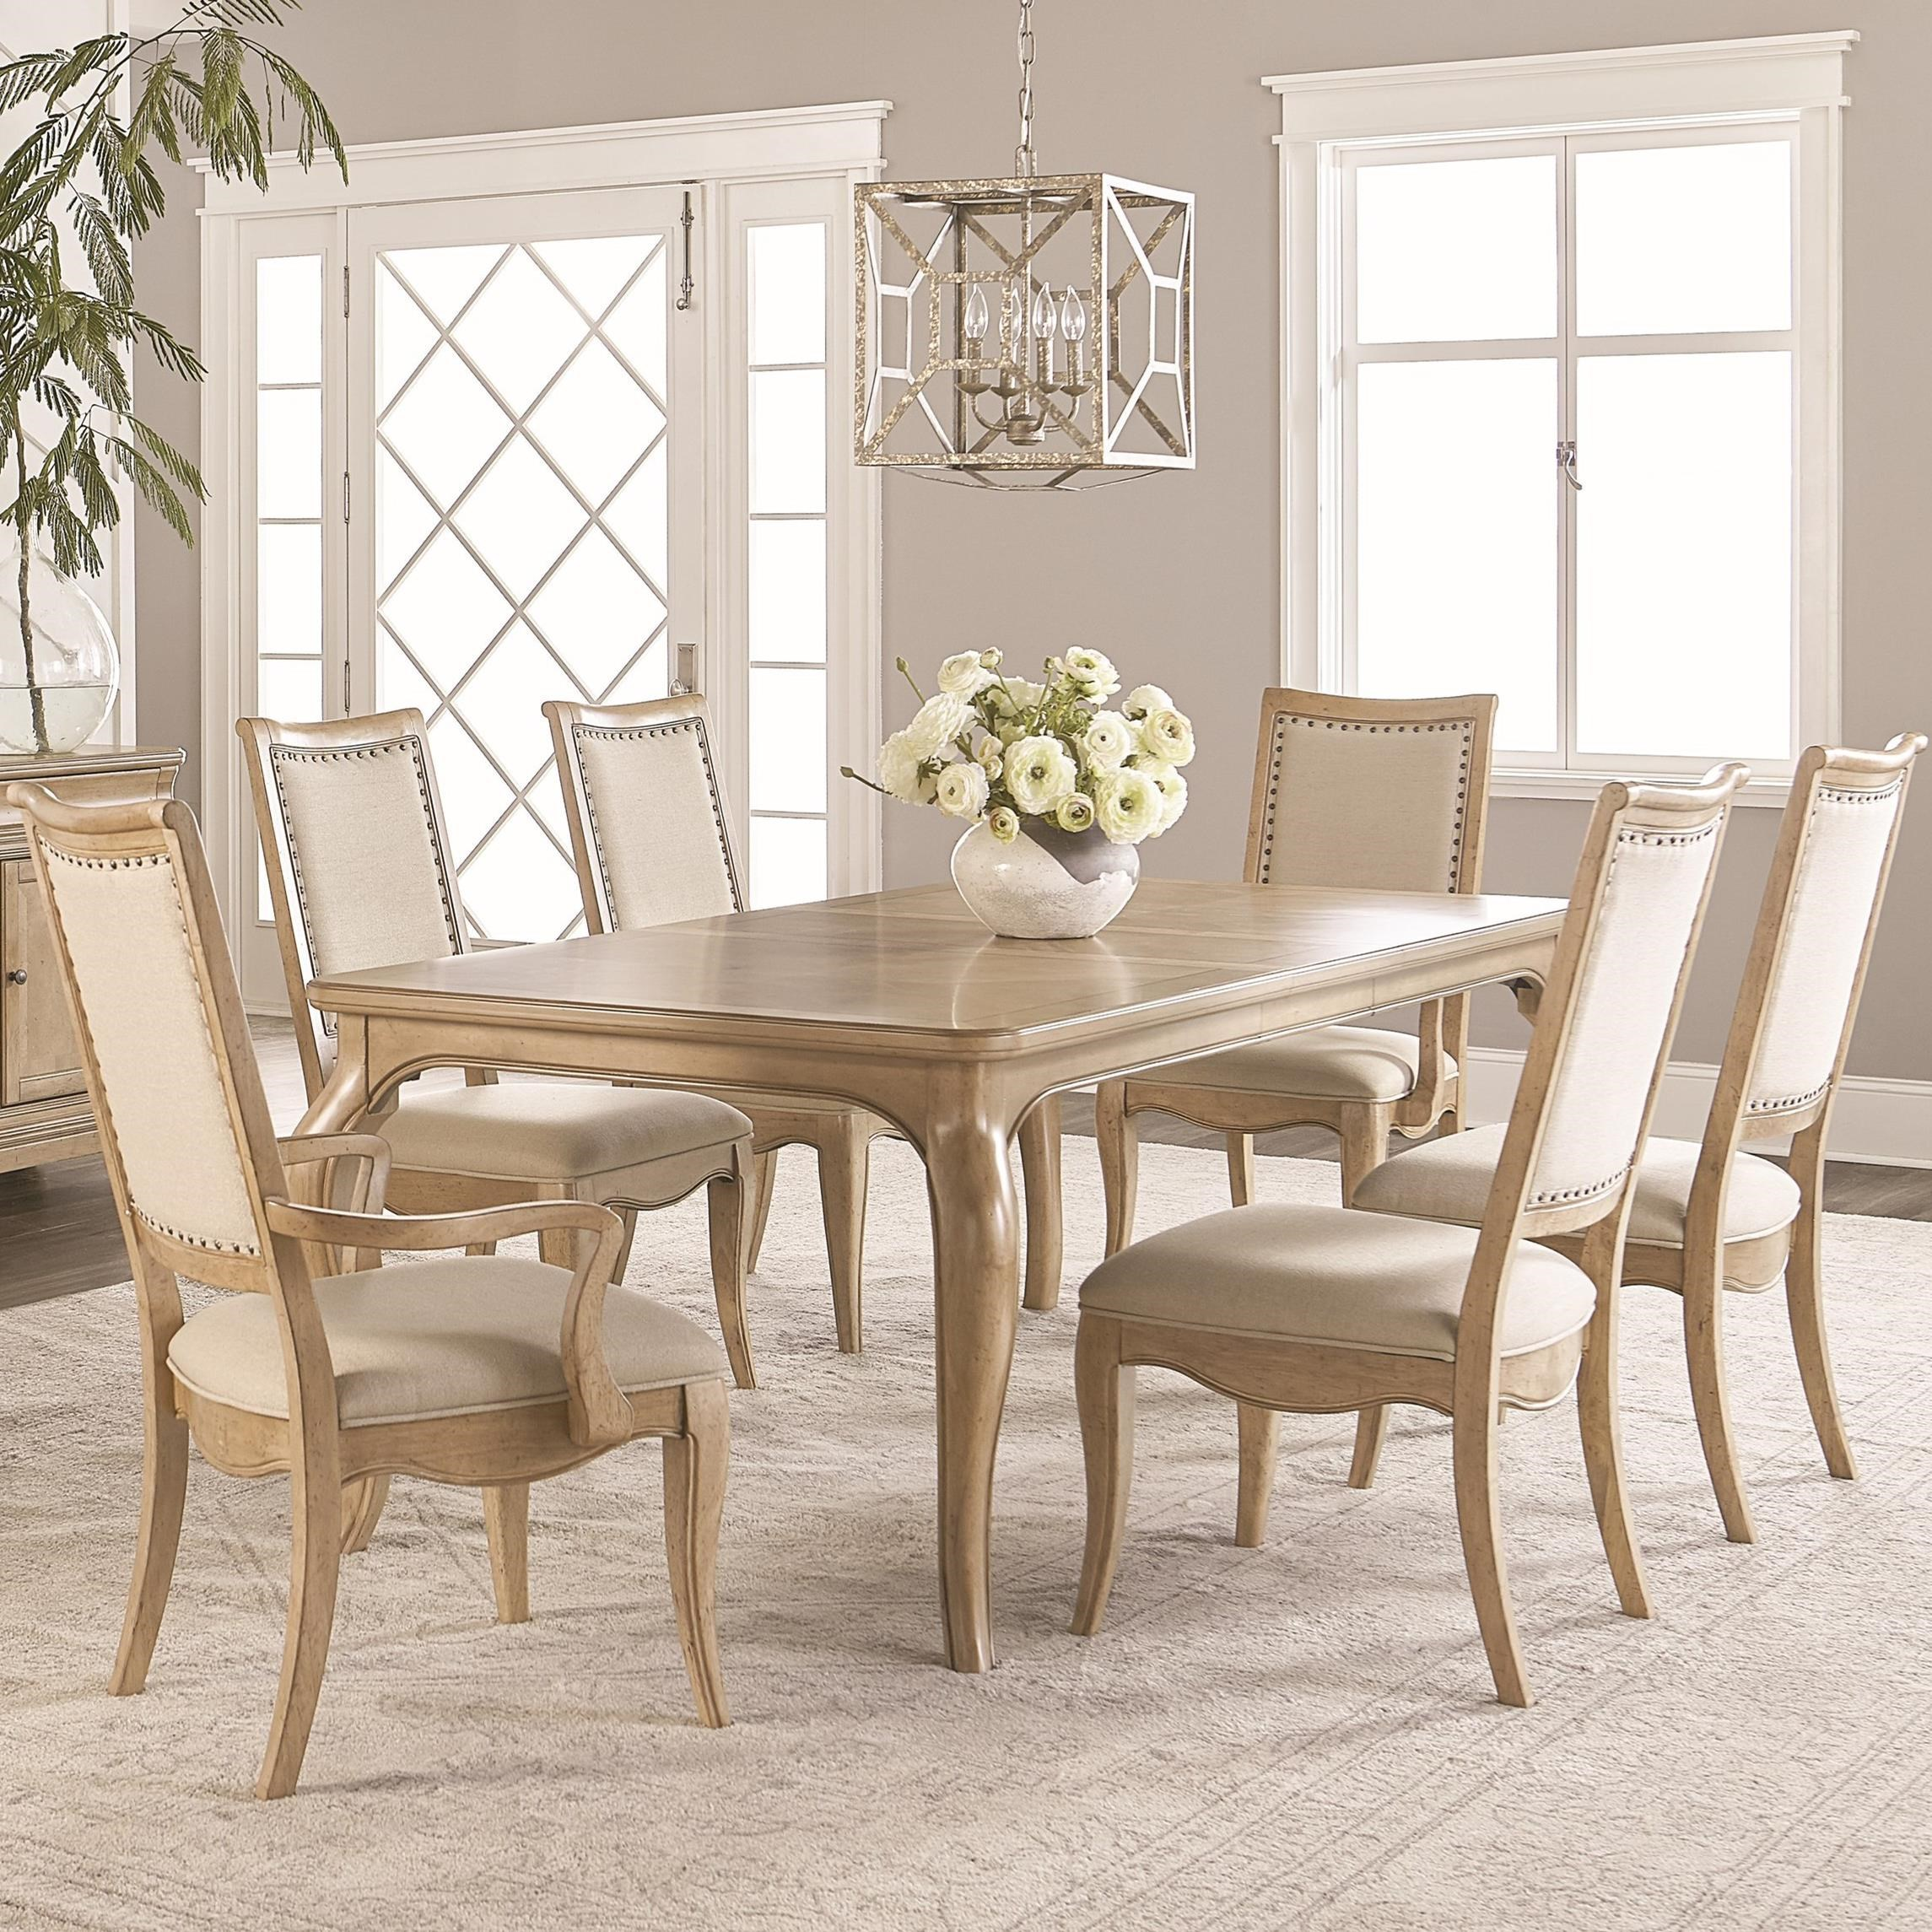 Legacy classic ashby woods 7 piece dining table and chair for Legacy classic dining table